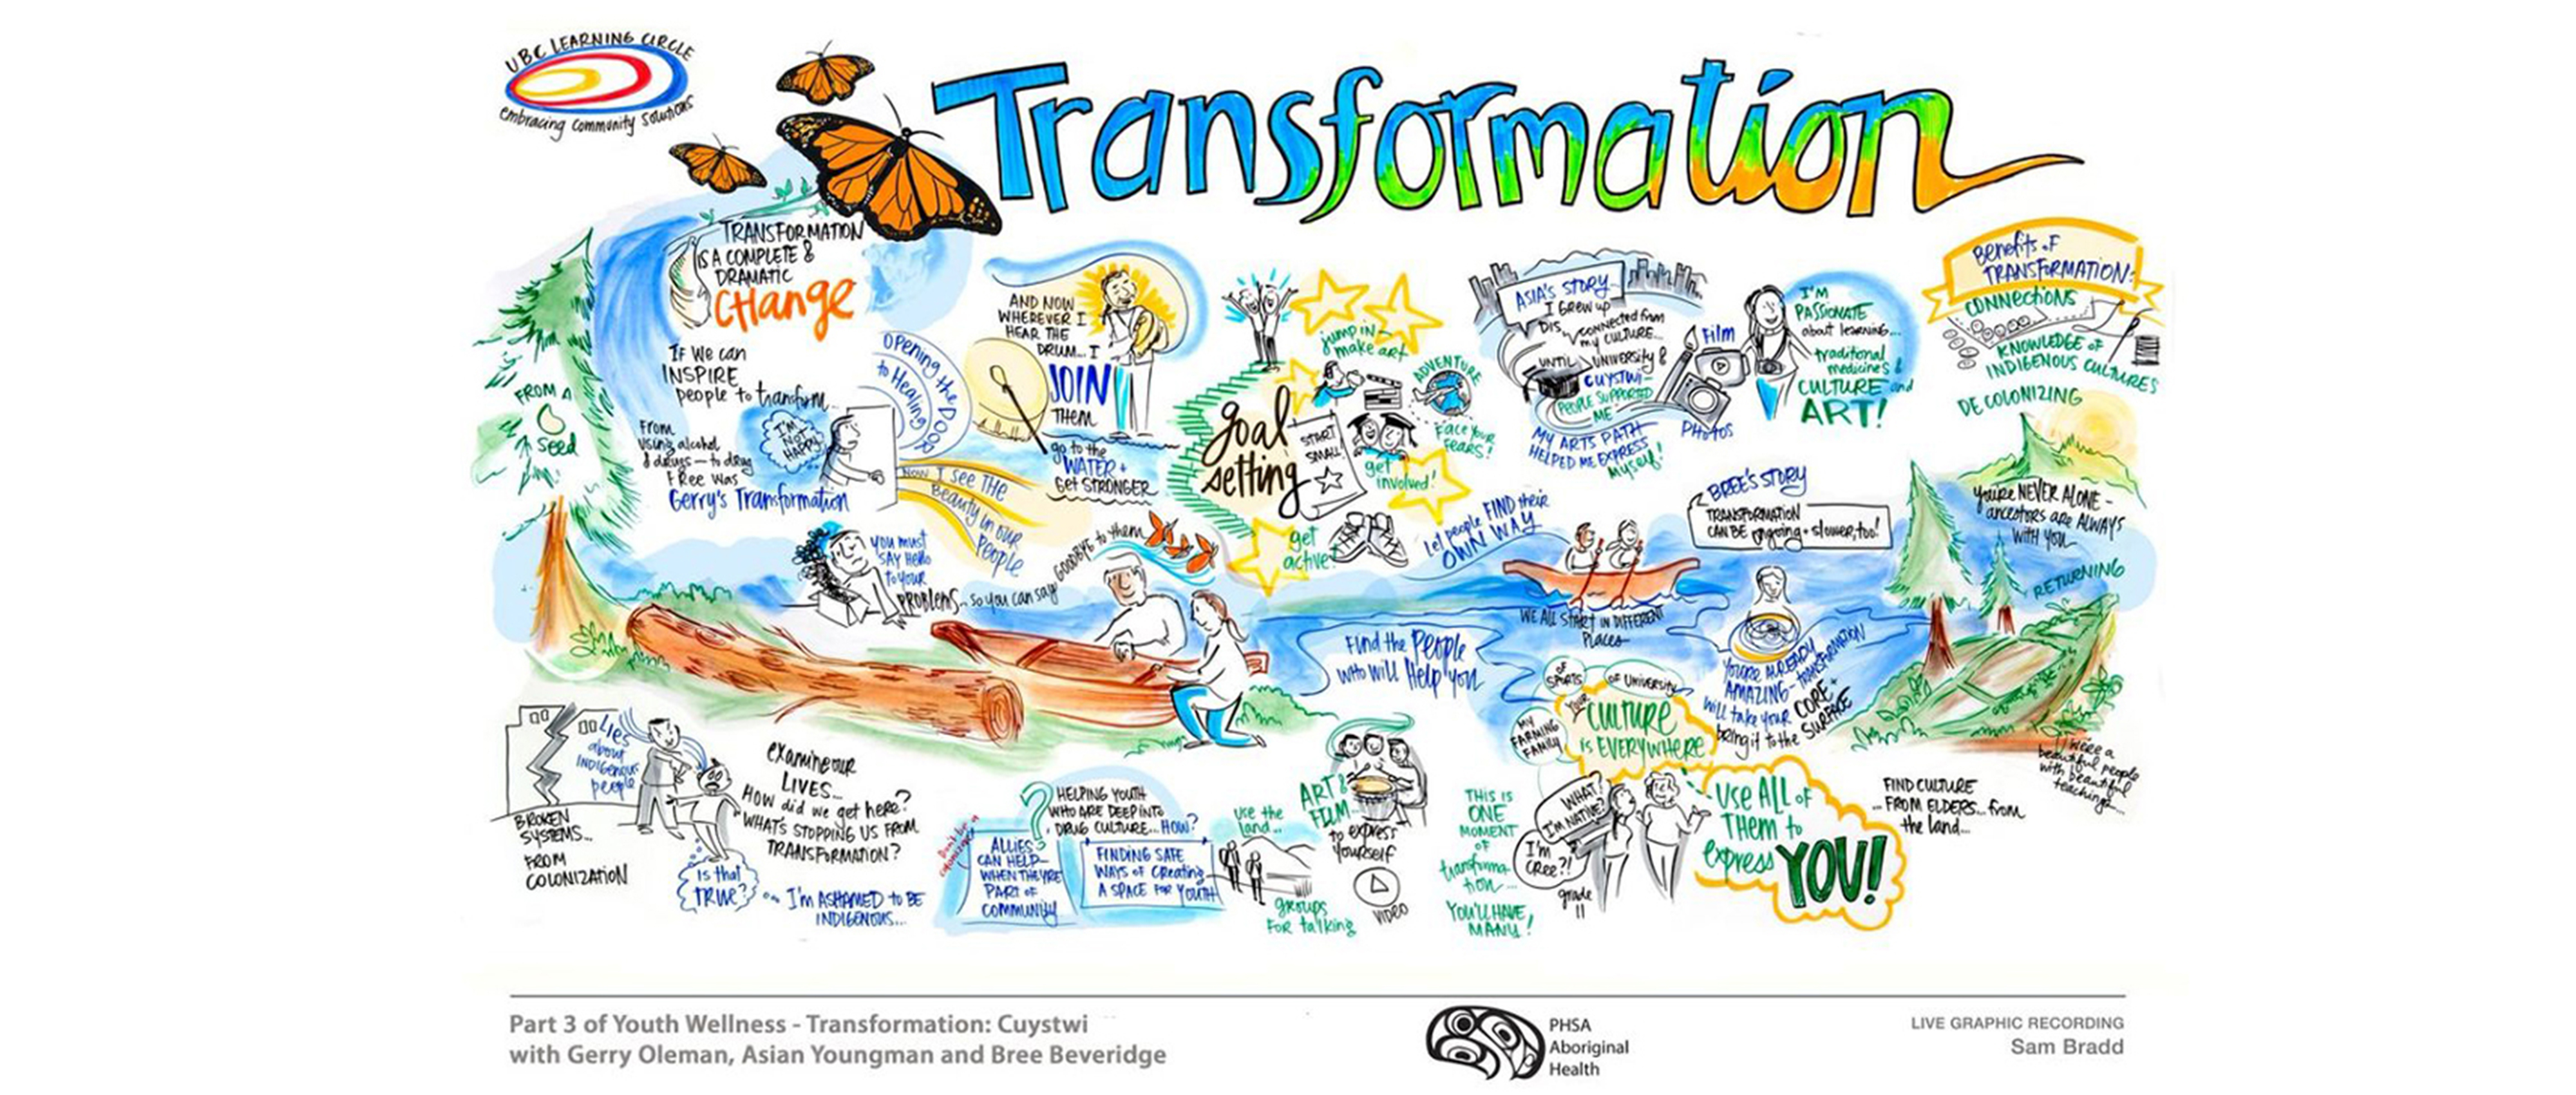 Graphic Recording of Indigenous Youth Wellness